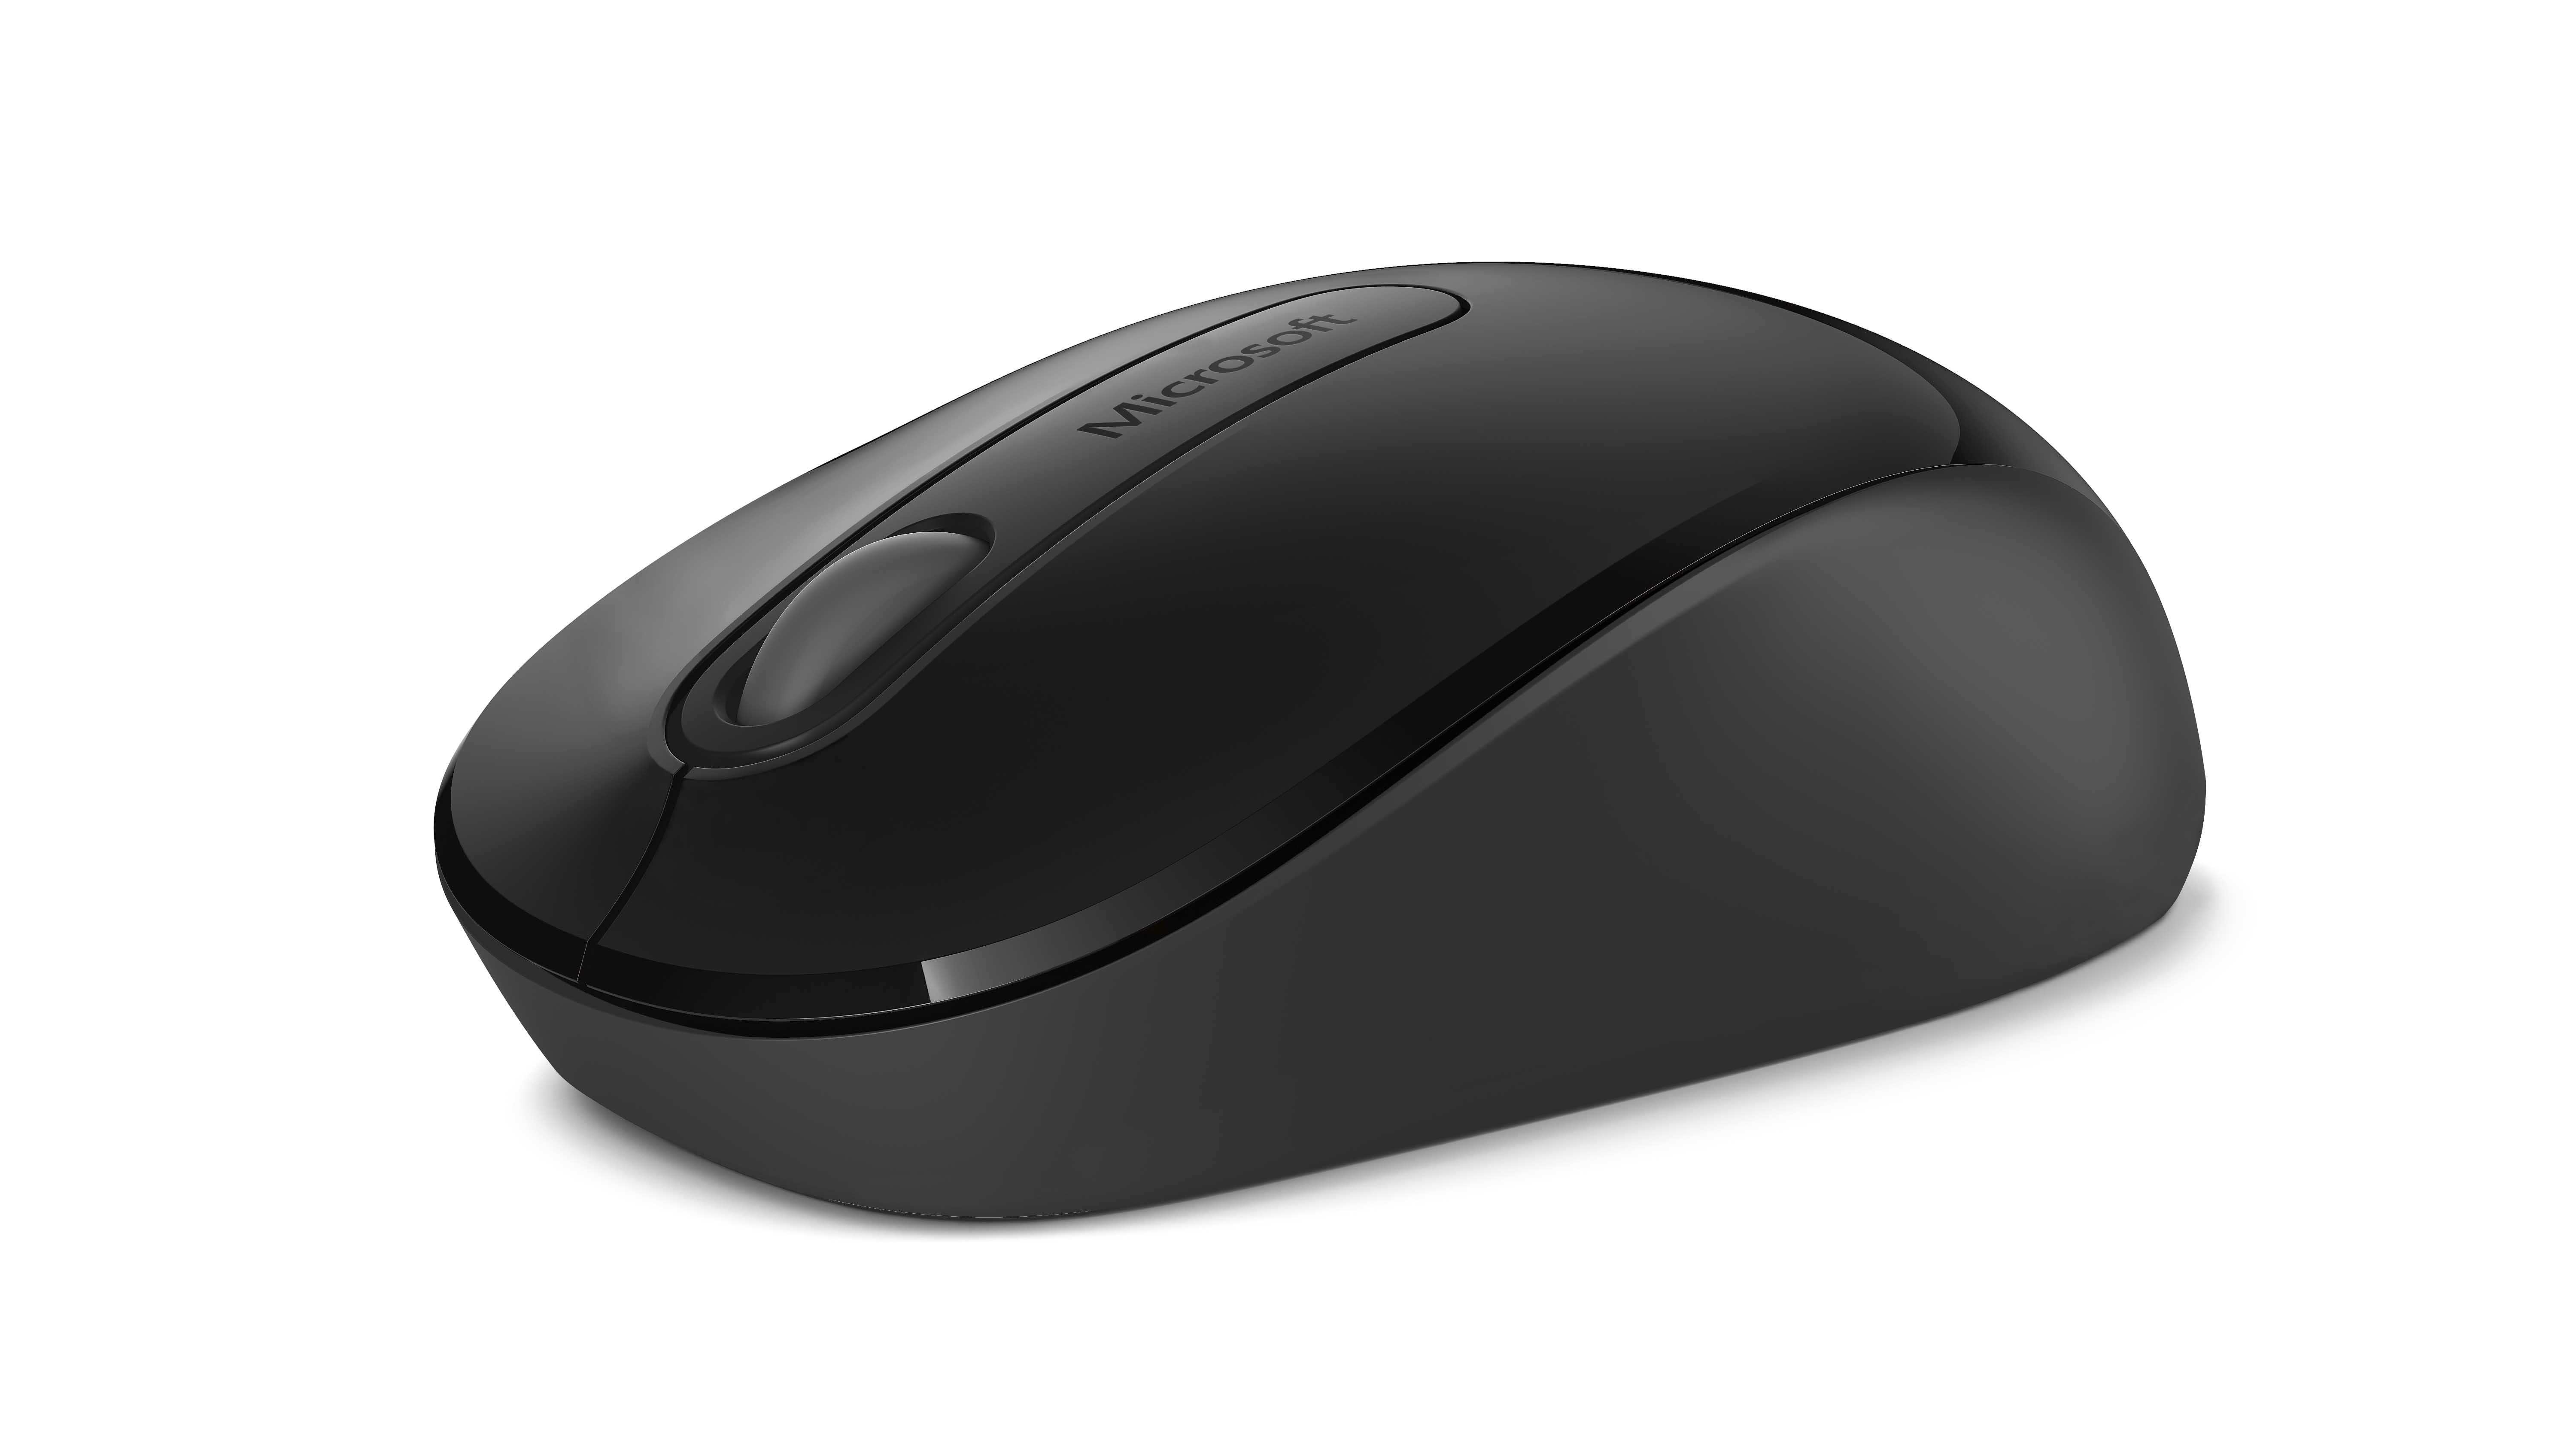 microsoft wireless mobile mouse 4000 driver xp